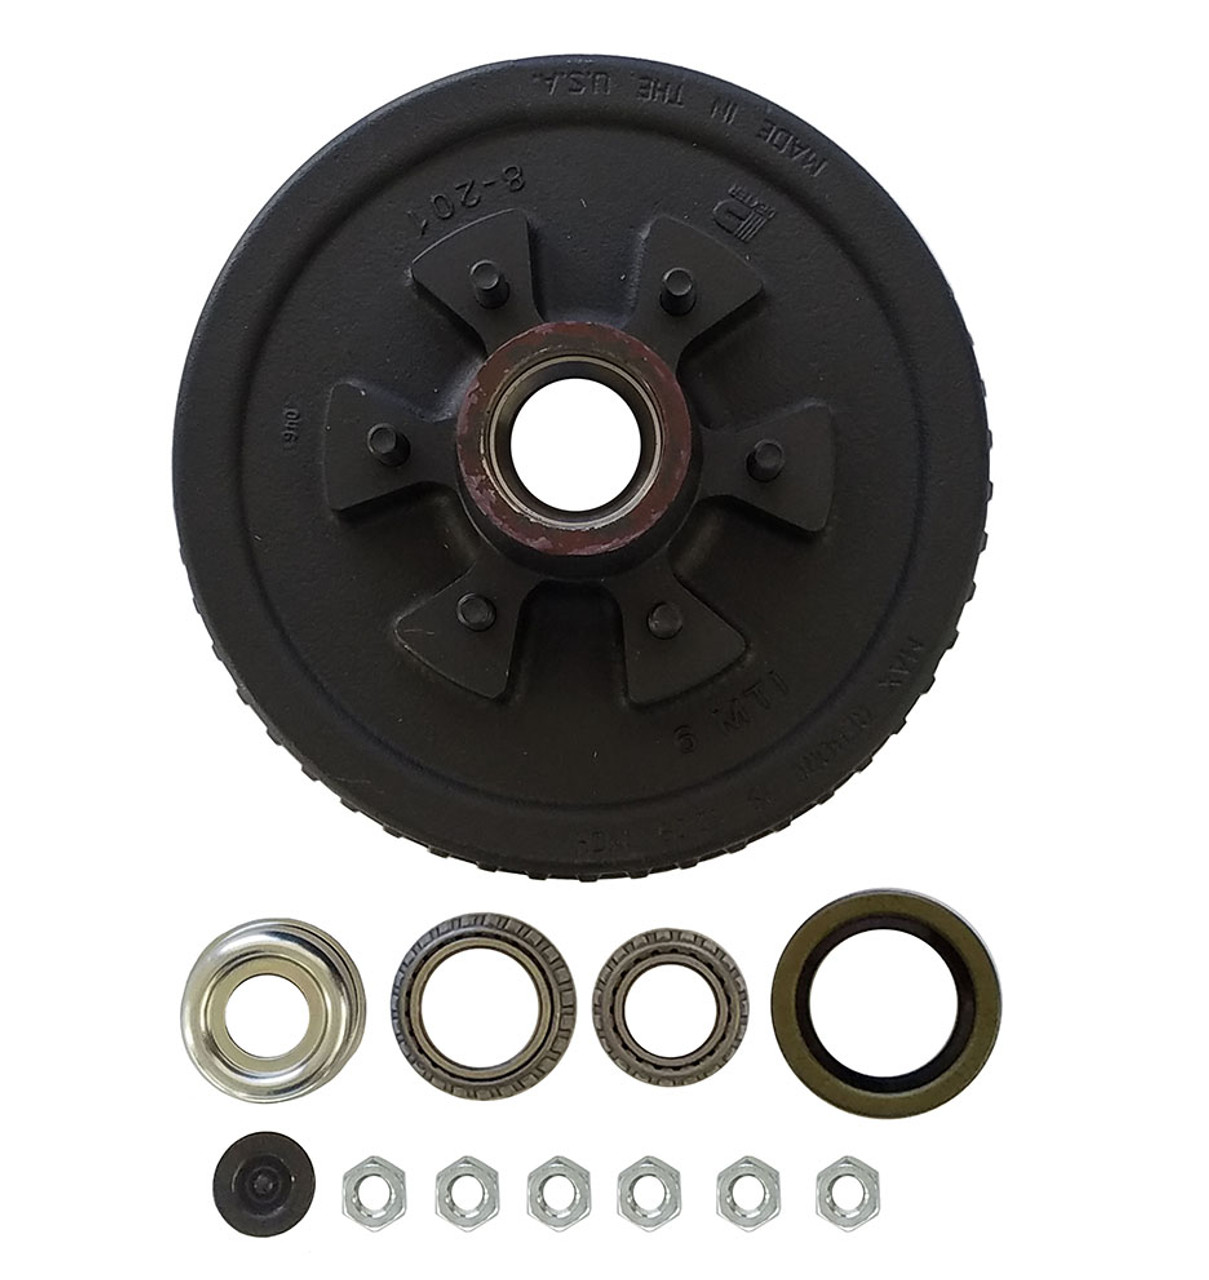 """1-42655HDEZ --- 6 on 5-1/2"""" Hub and Drum Assembly - 6,000 lb - Ez Lube"""